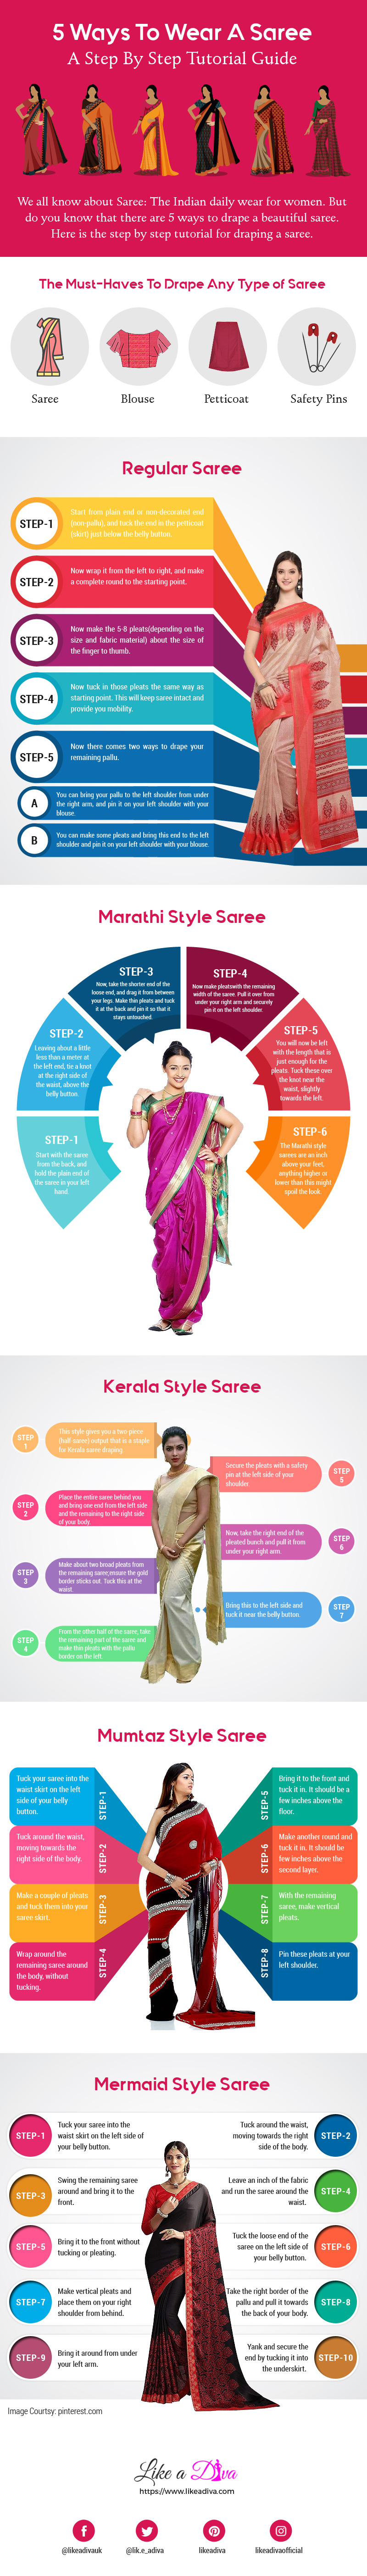 5-Ways-to-Wear-A-Saree